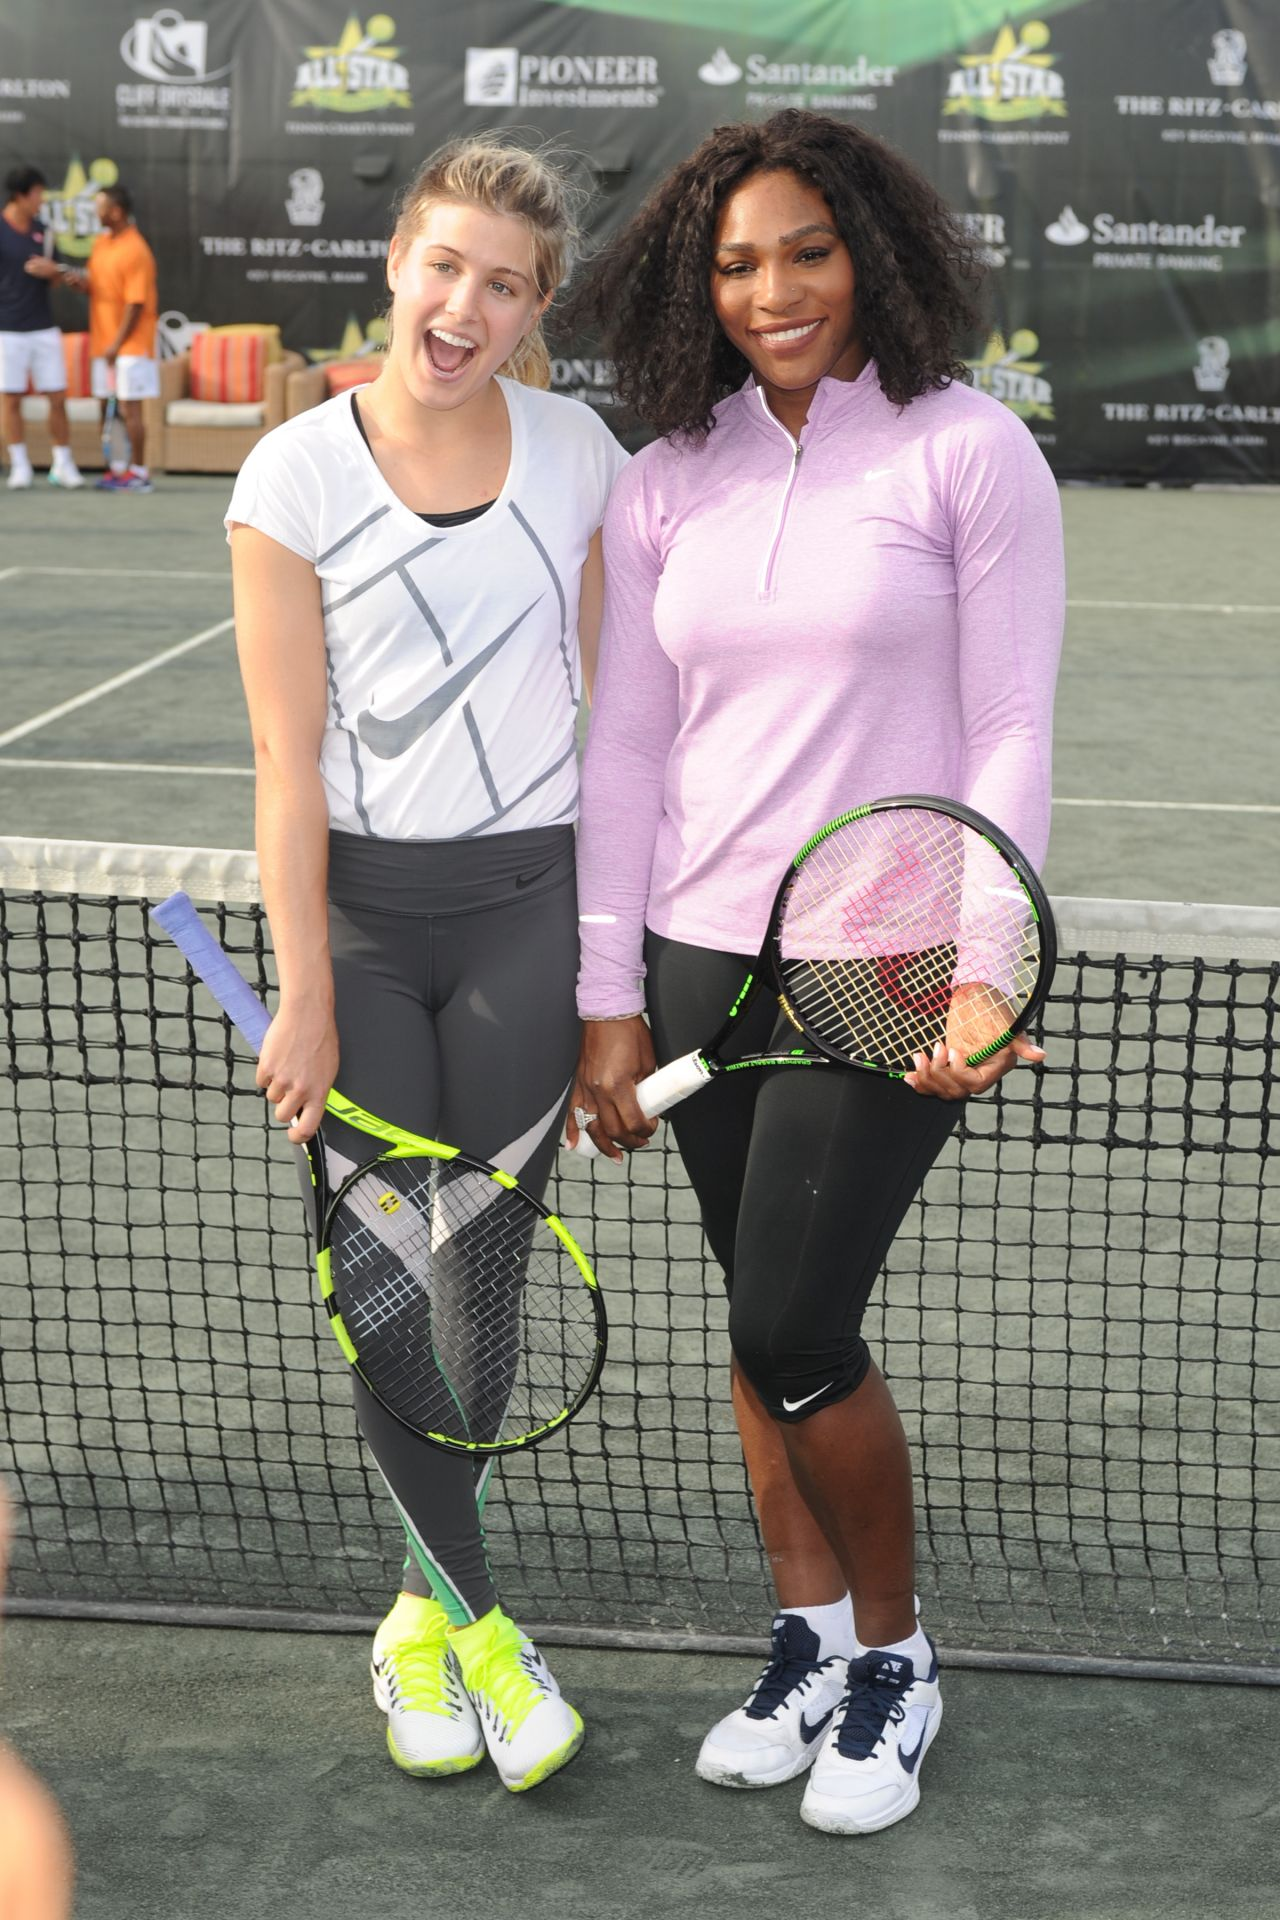 ¿Cuánto mide Eugenie Bouchard? - Altura - Real height Eugenie-bouchard-serena-williams-chris-evert-all-star-tennis-event-the-miami-open-2016-4